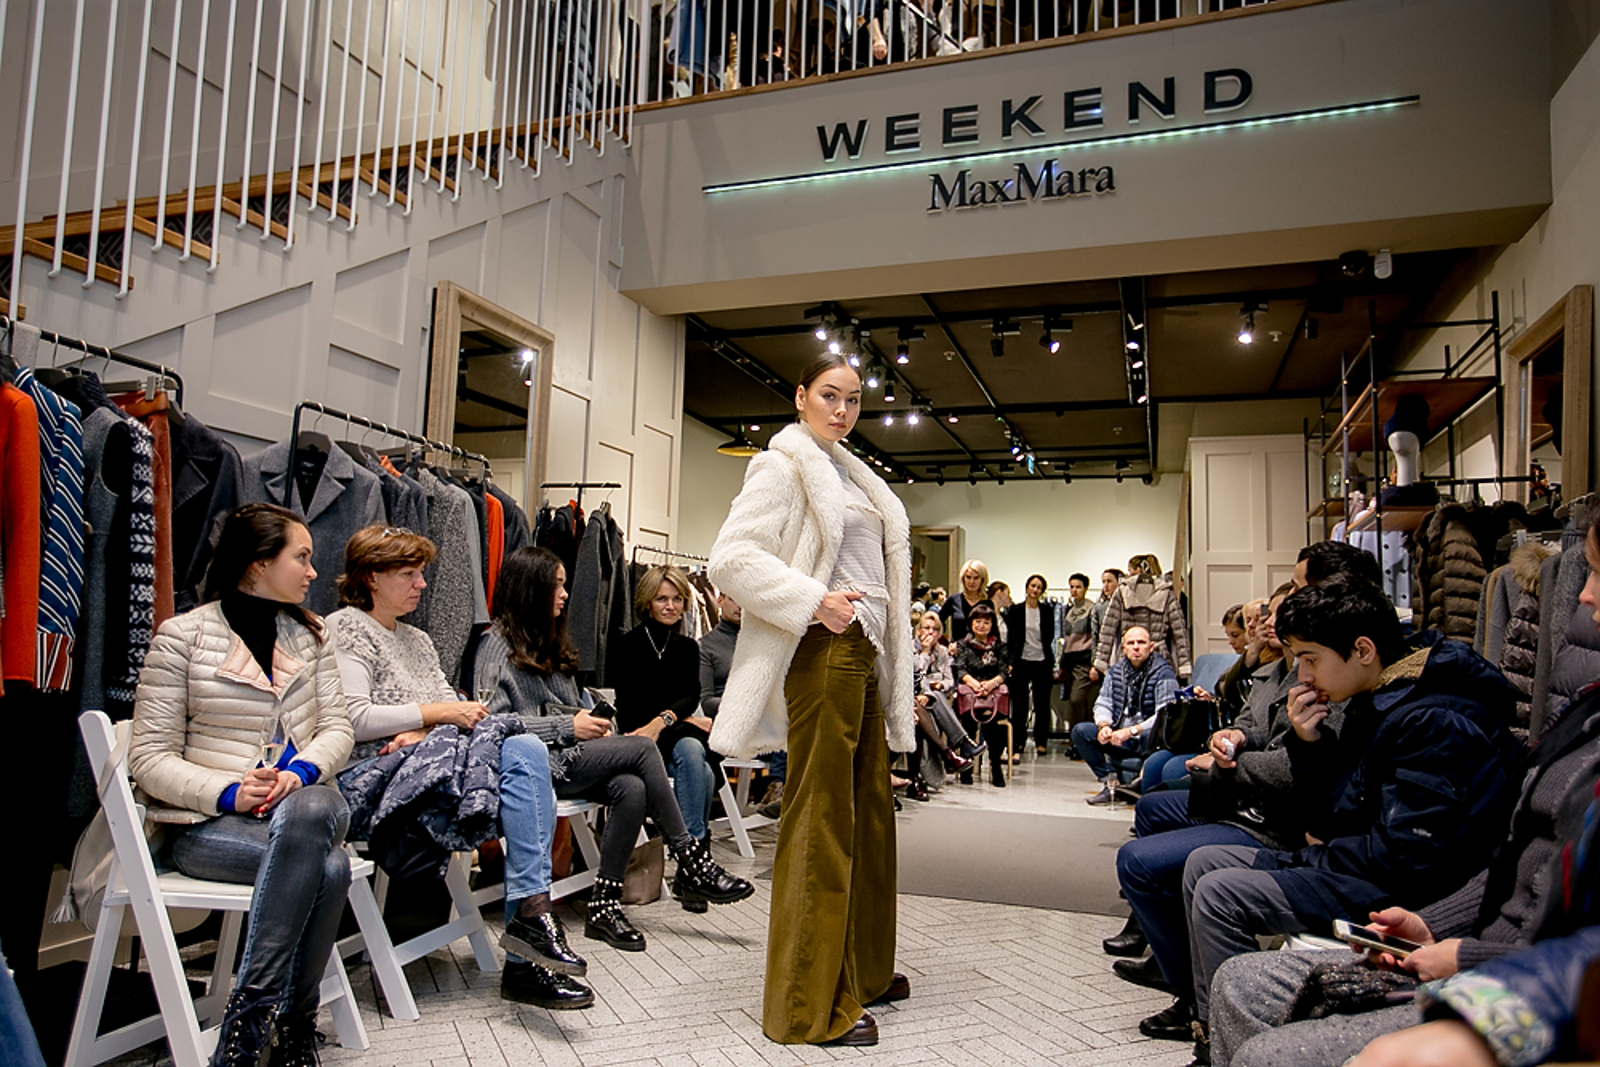 Транк-шоу в Weekend MaxMara в Петербурге